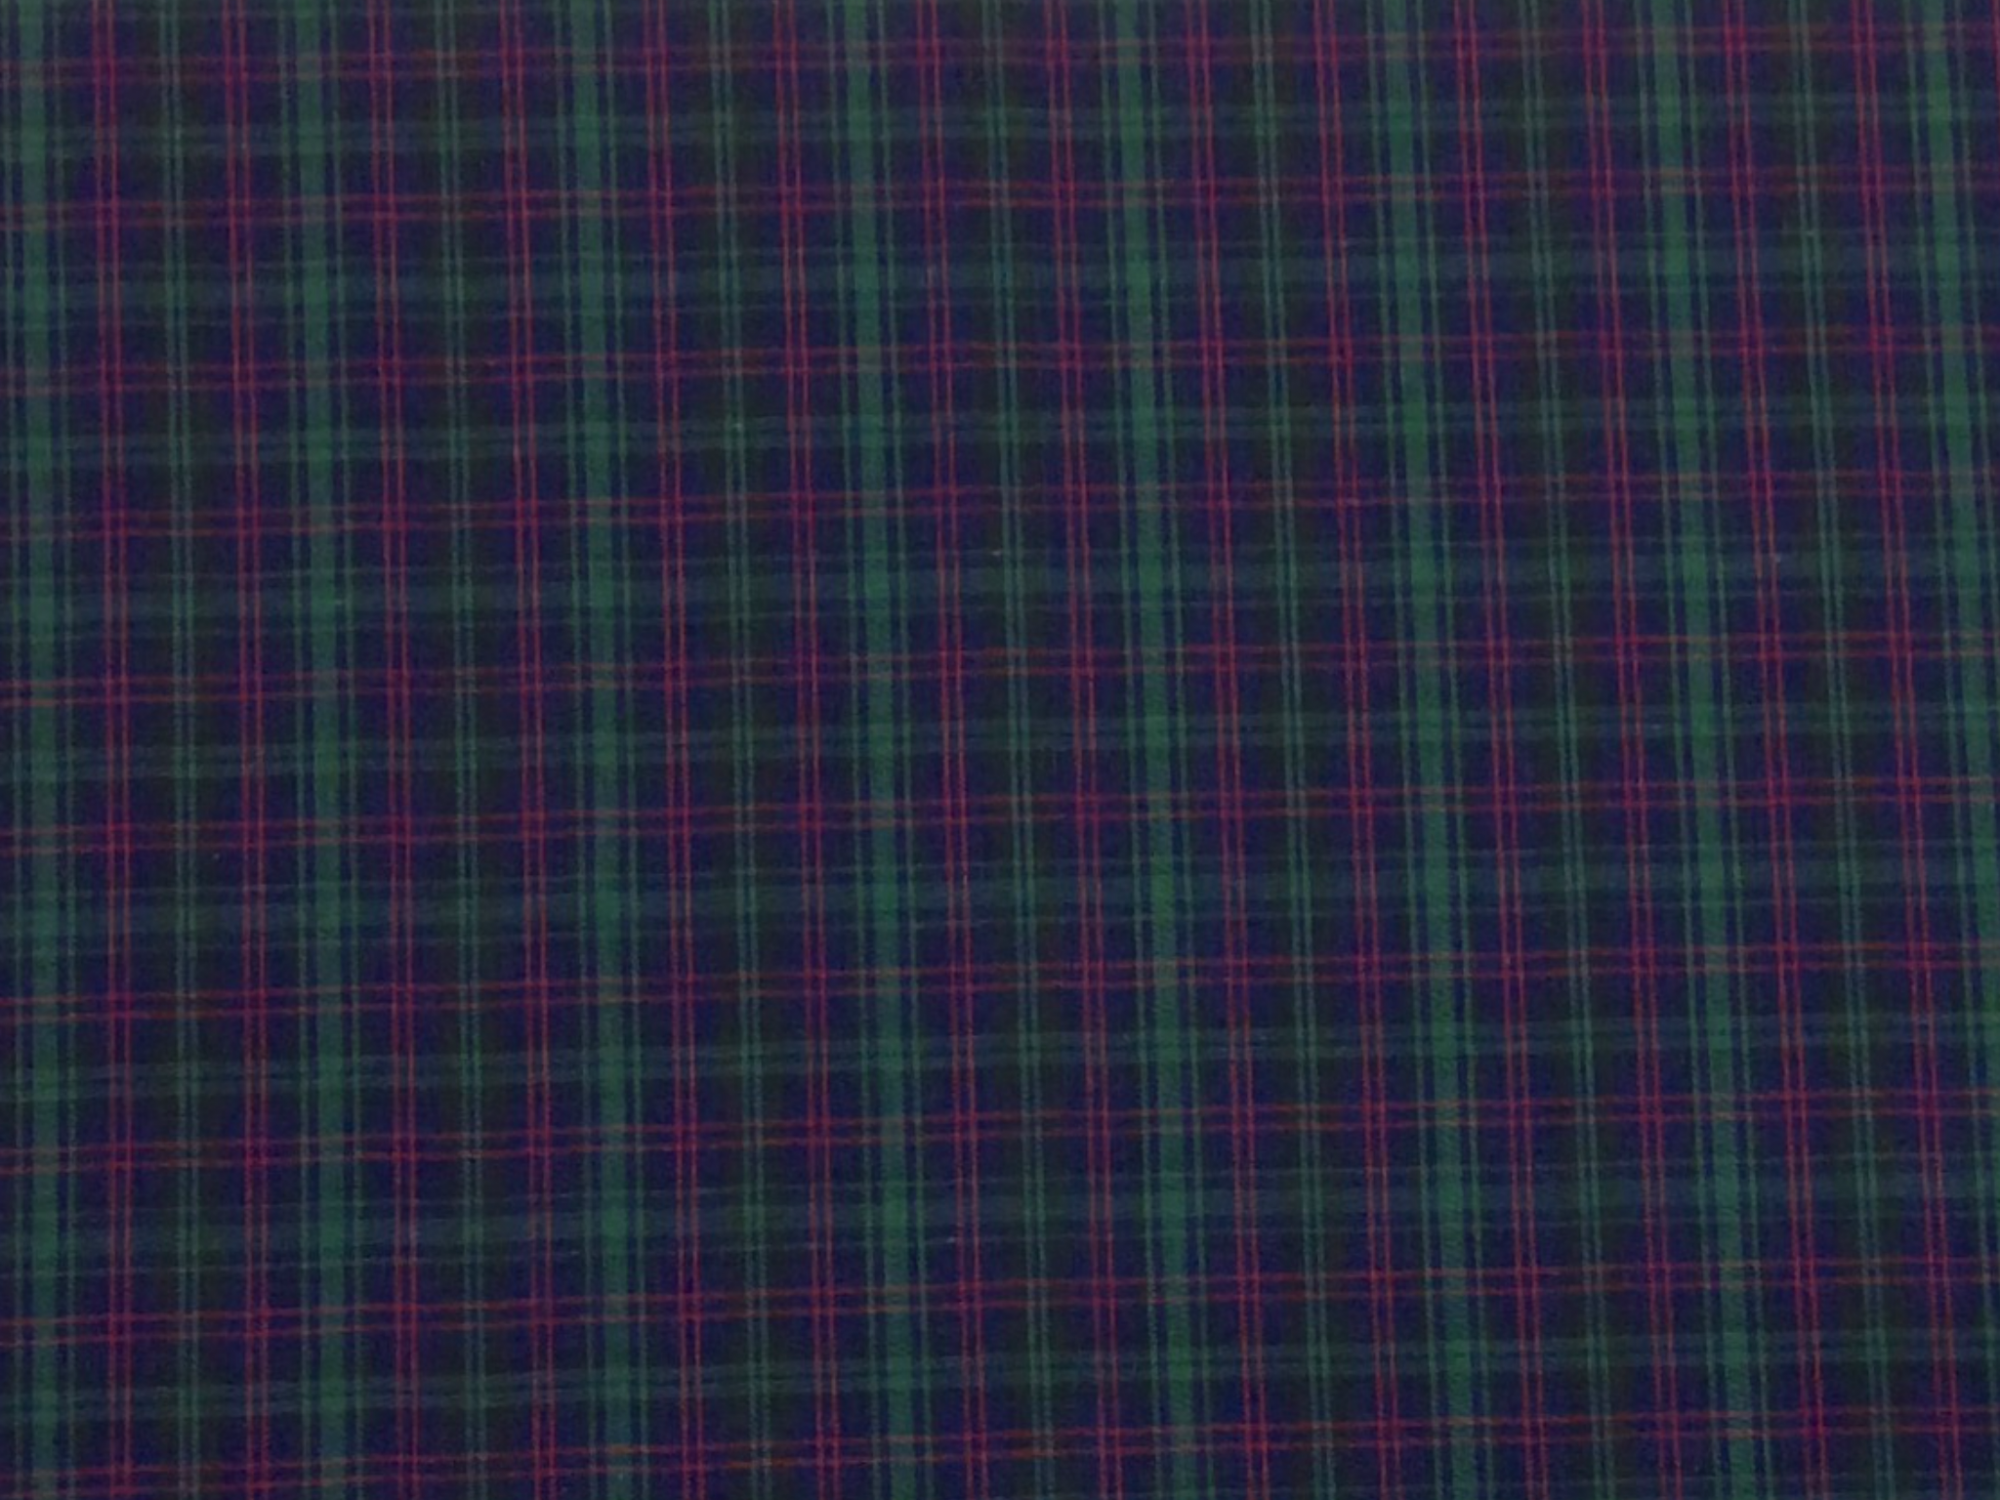 Tartan Plaid Lowell Apparel Fabric Yarn Dyed Fabric FTP31